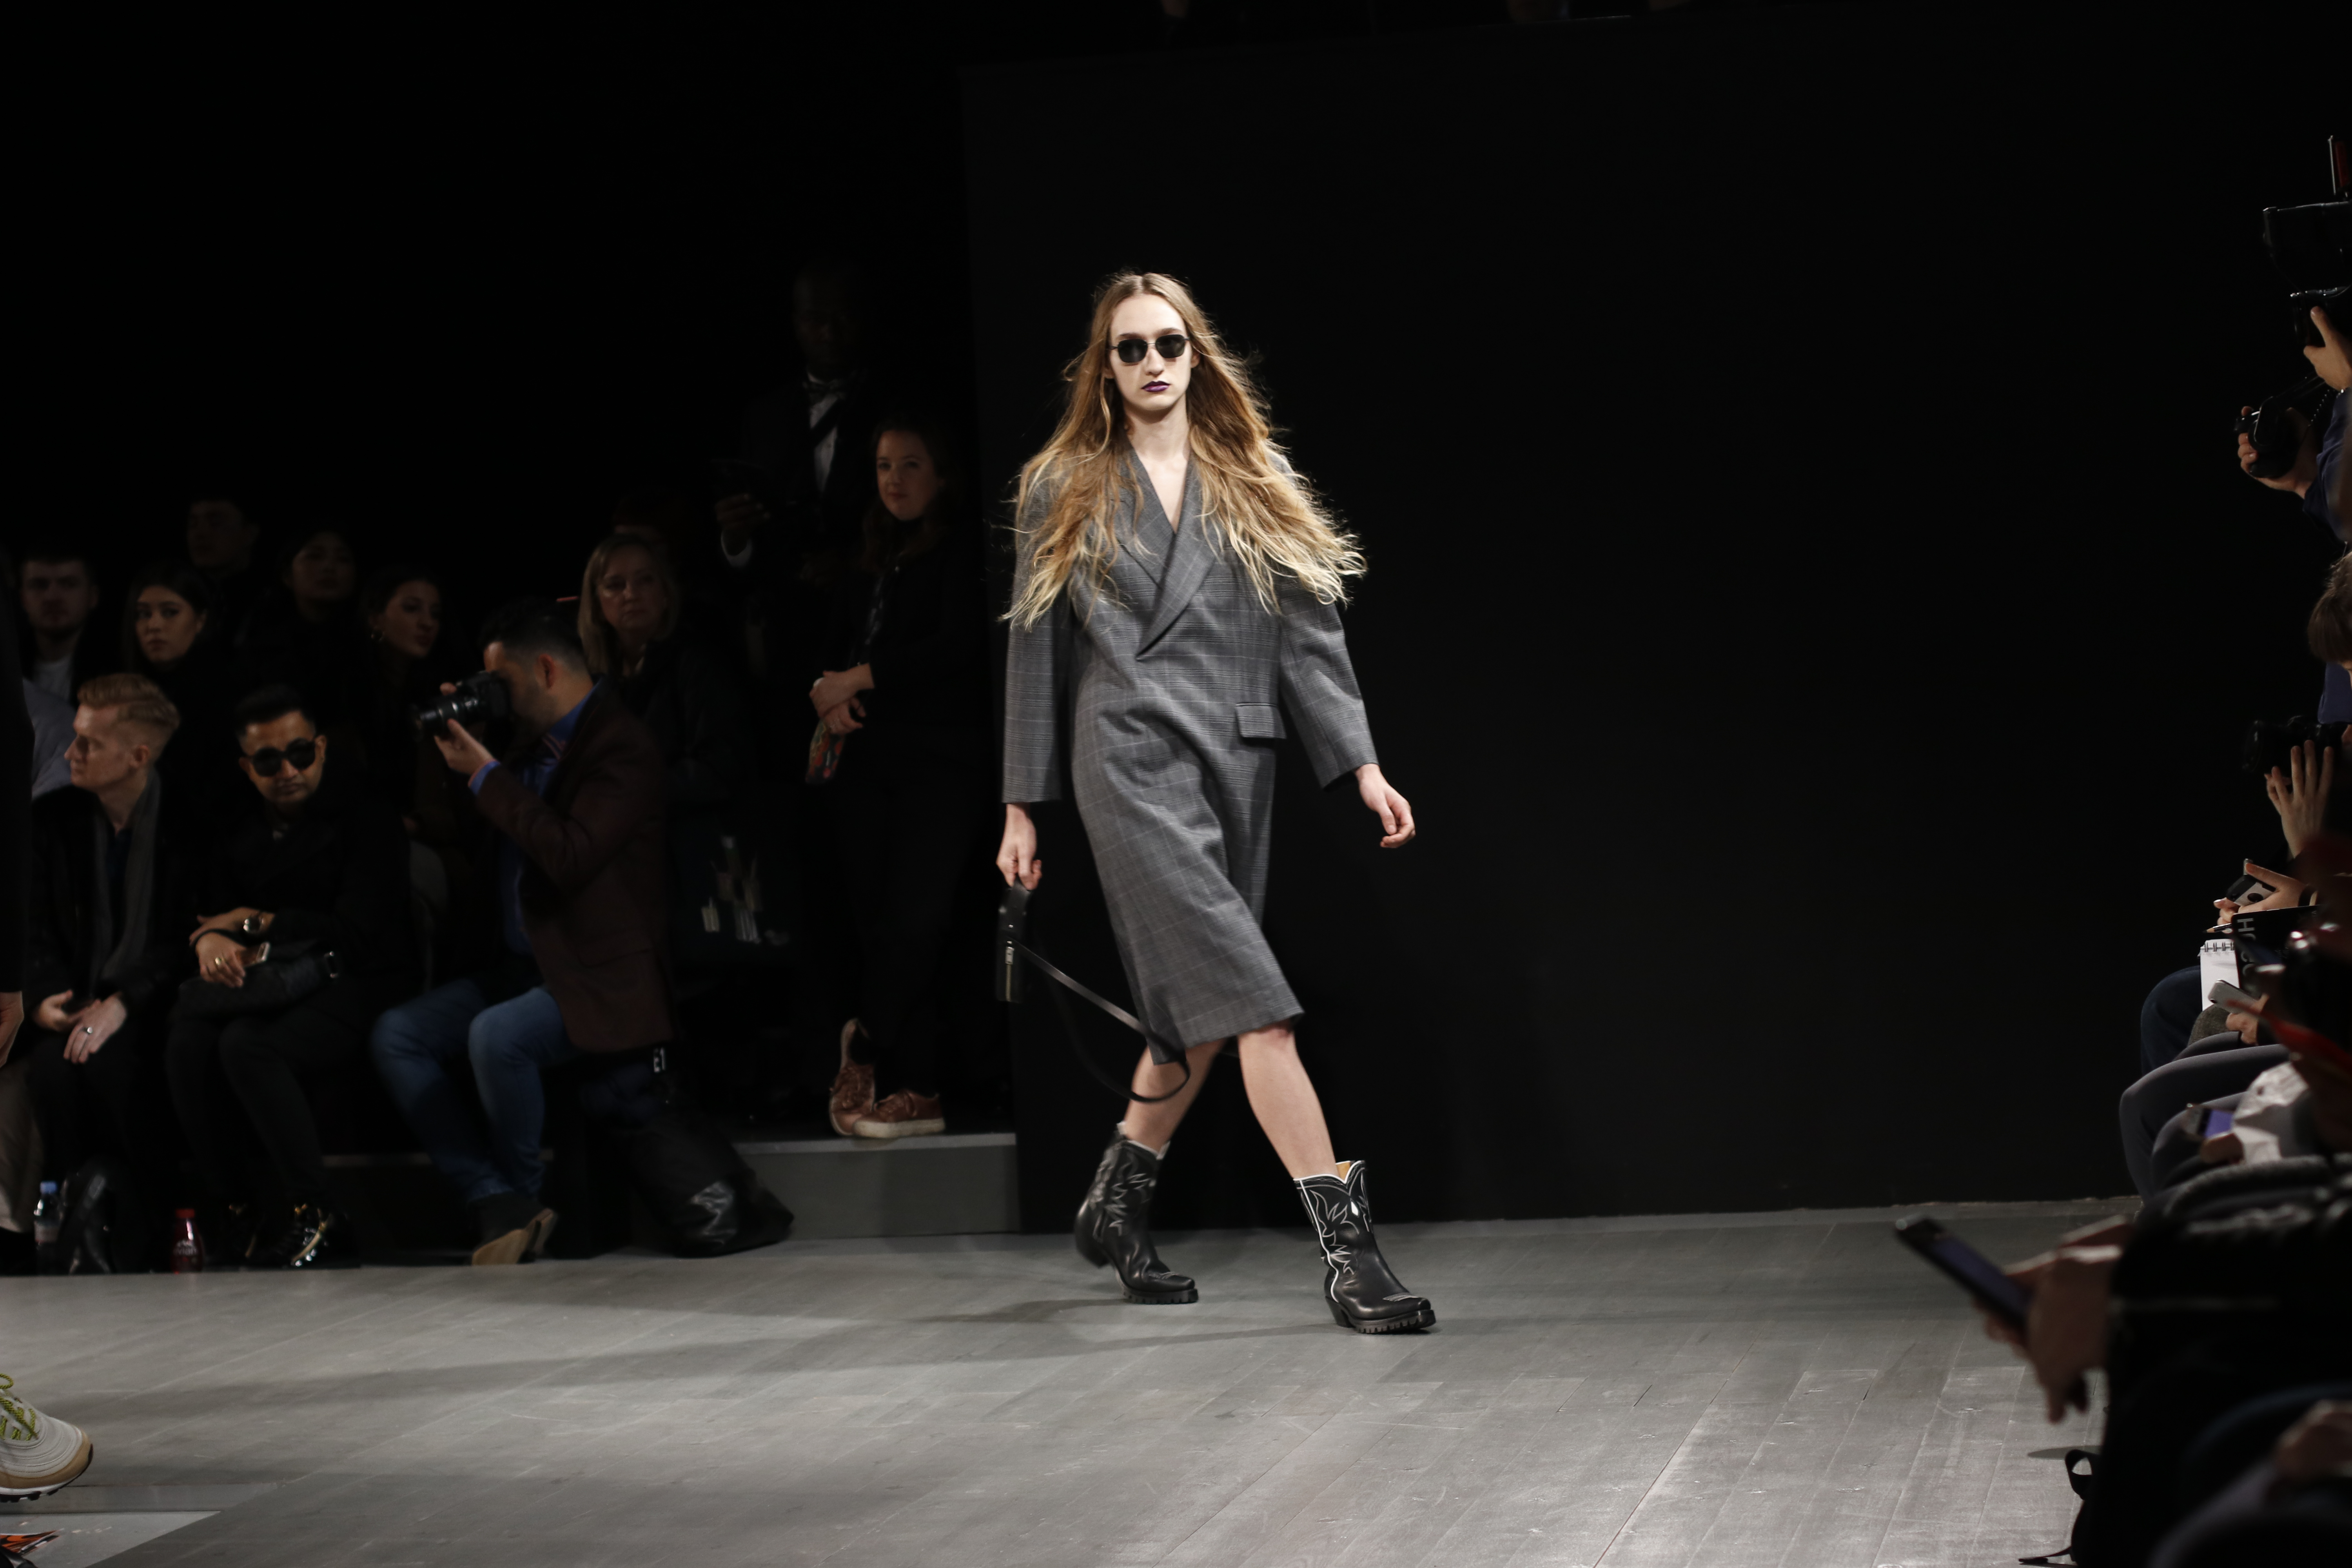 model in grey long coat walking on catwalk